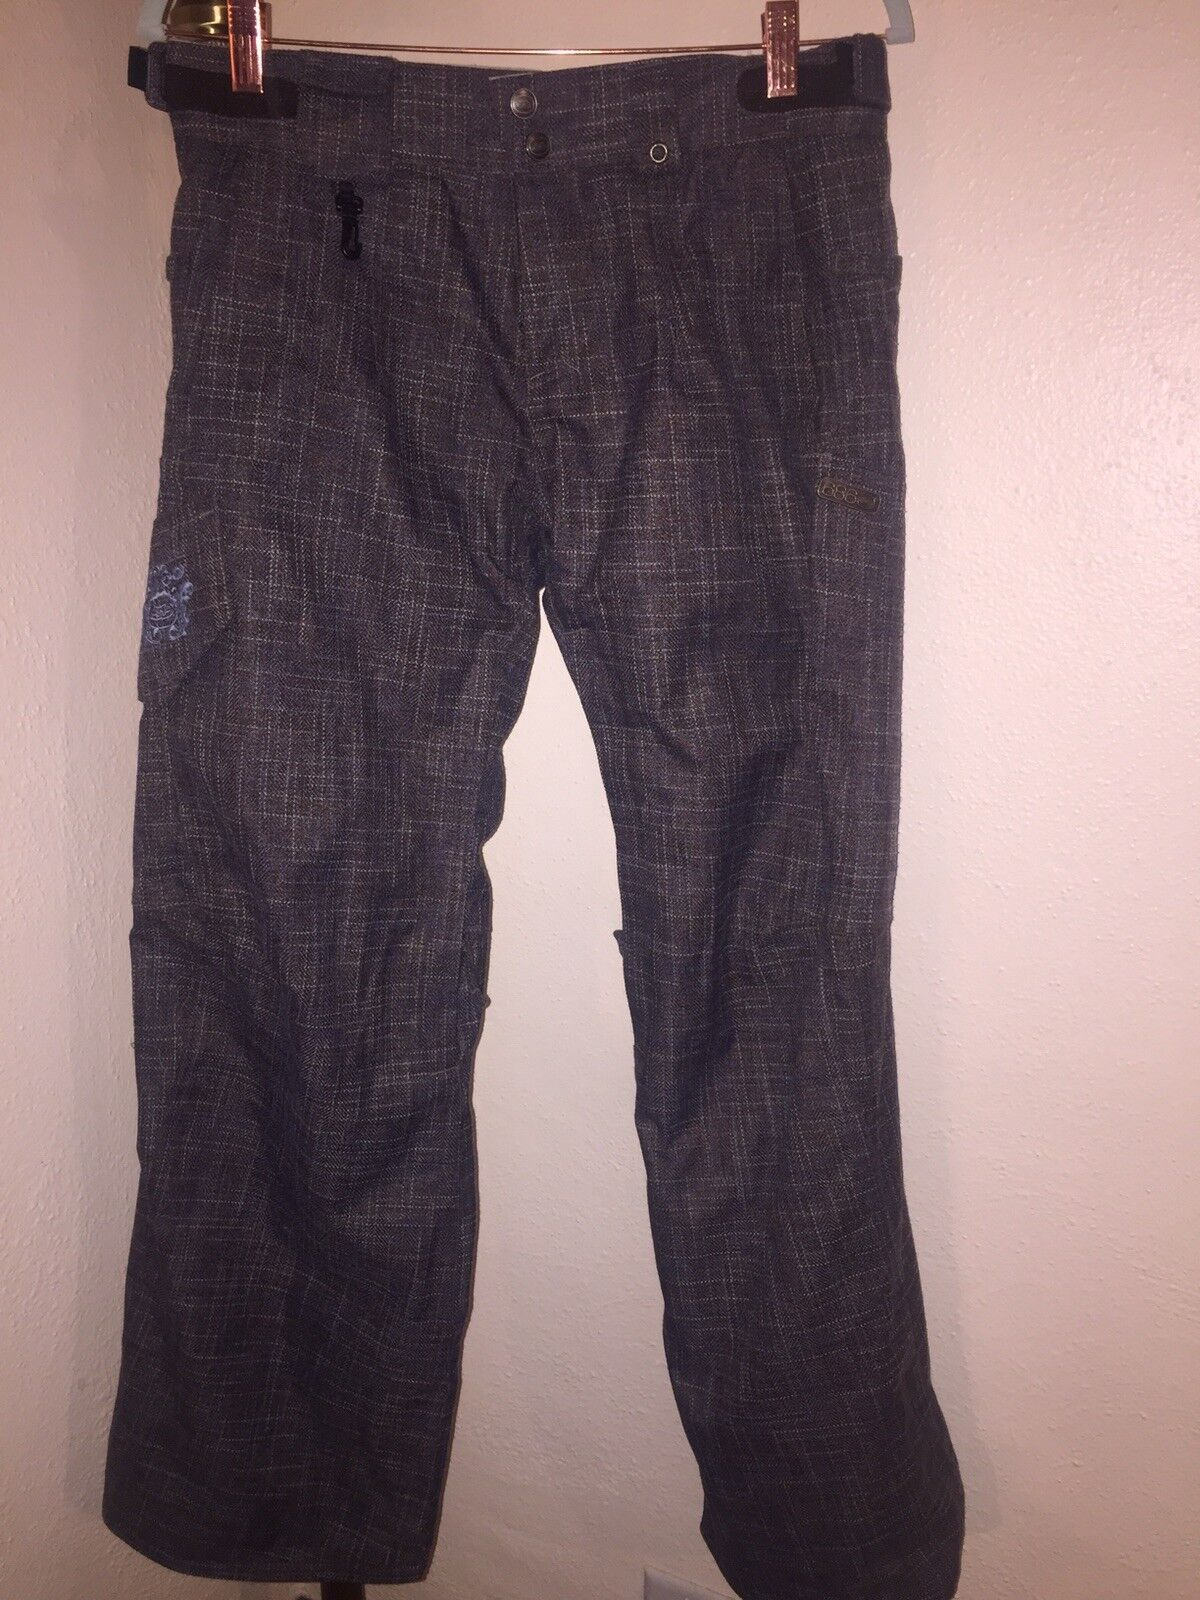 WOMEN'S SIX EIGHT SIX 686 SMARTY SNOWBOARD SKI PANTS SZ SMALL W OUT LINER